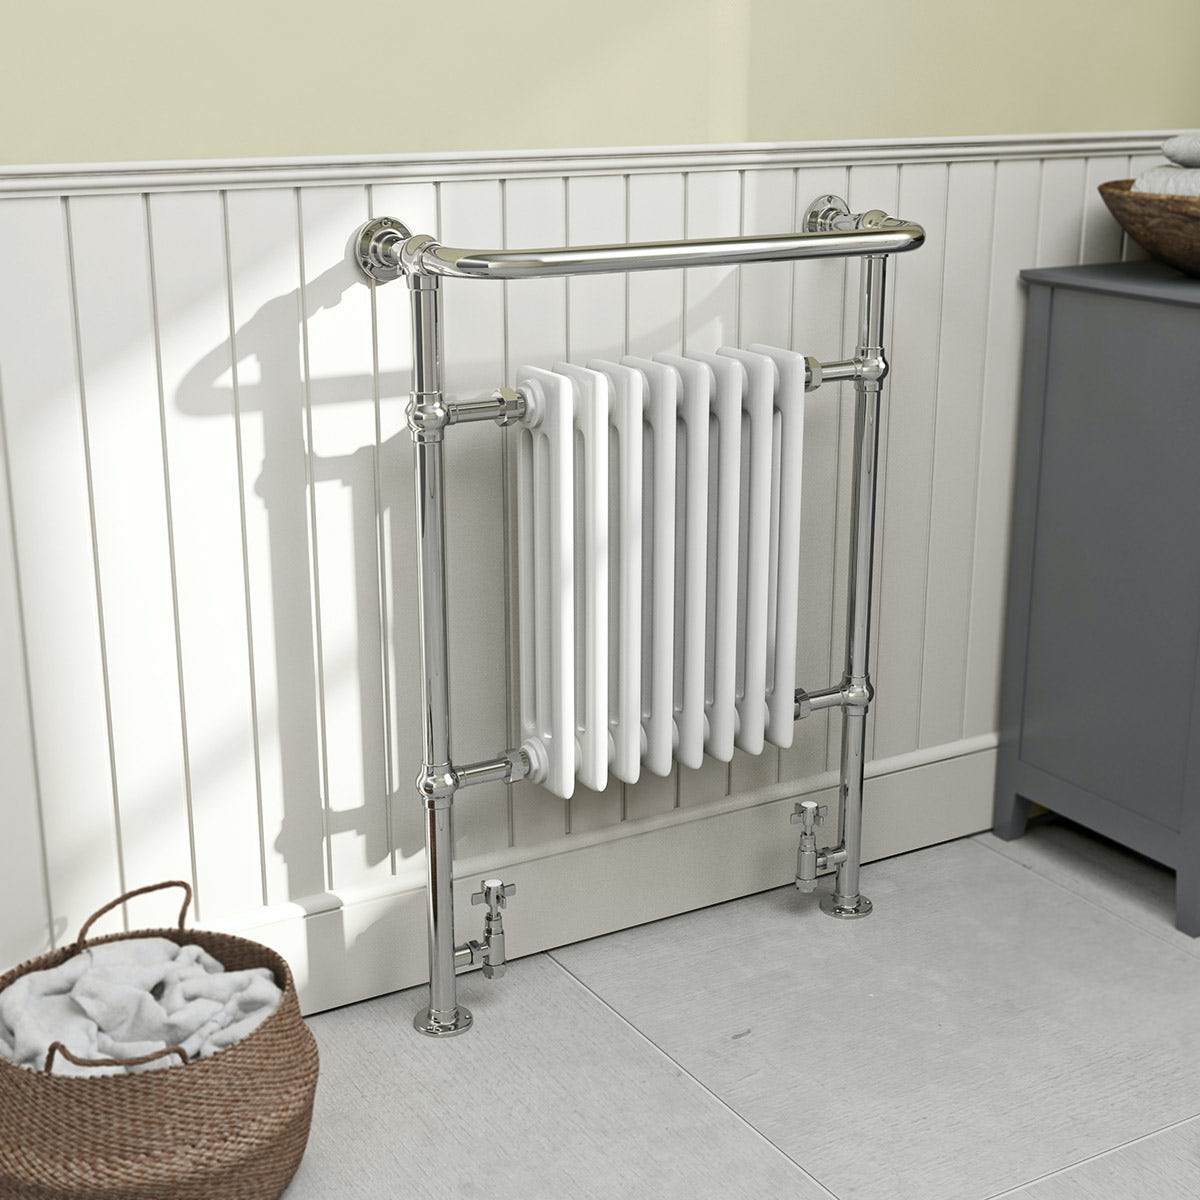 Dulwich traditional radiator 952 x 659